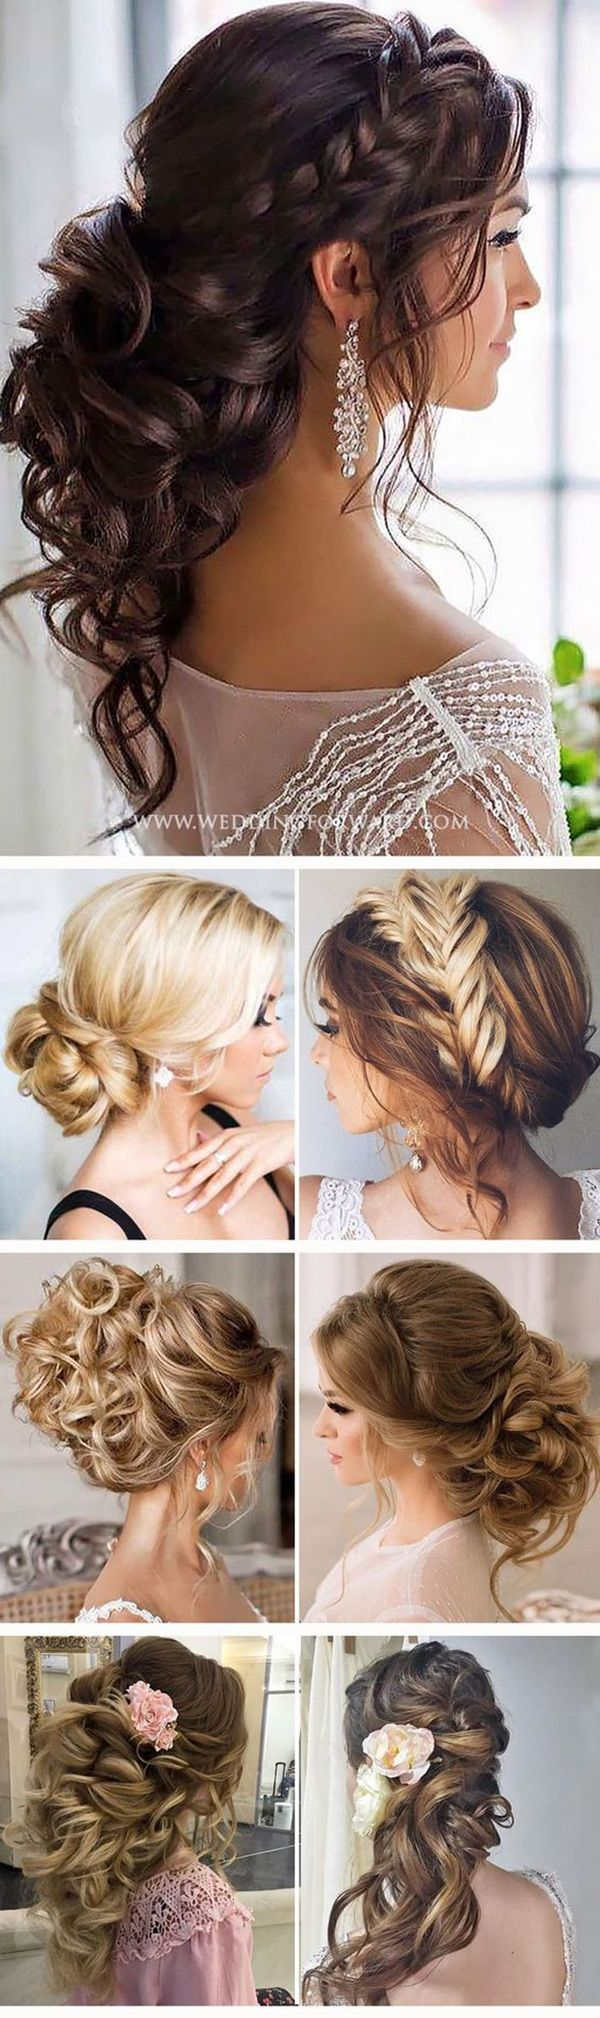 2017 06 homecoming hairstyles long hair - Best 25 Prom Updo Ideas On Pinterest Grad Hairstyles Prom Hair Updo And Hair Updo